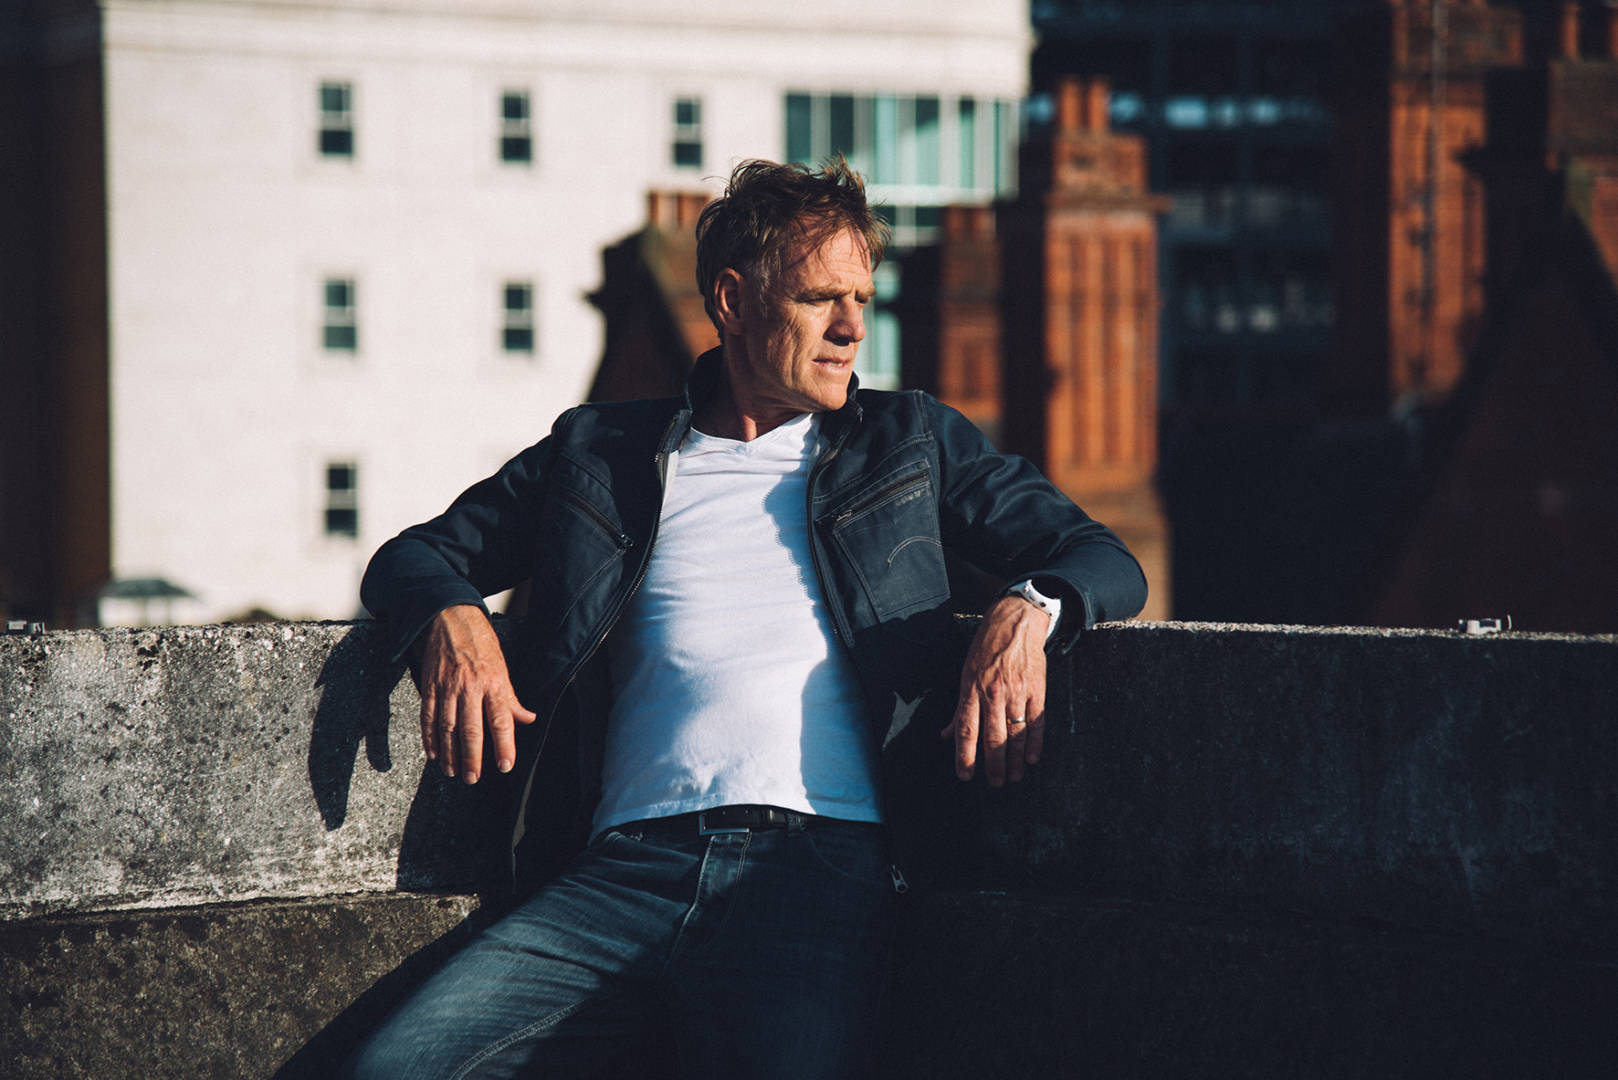 Backstage Kinross Welcomes Martyn Joseph